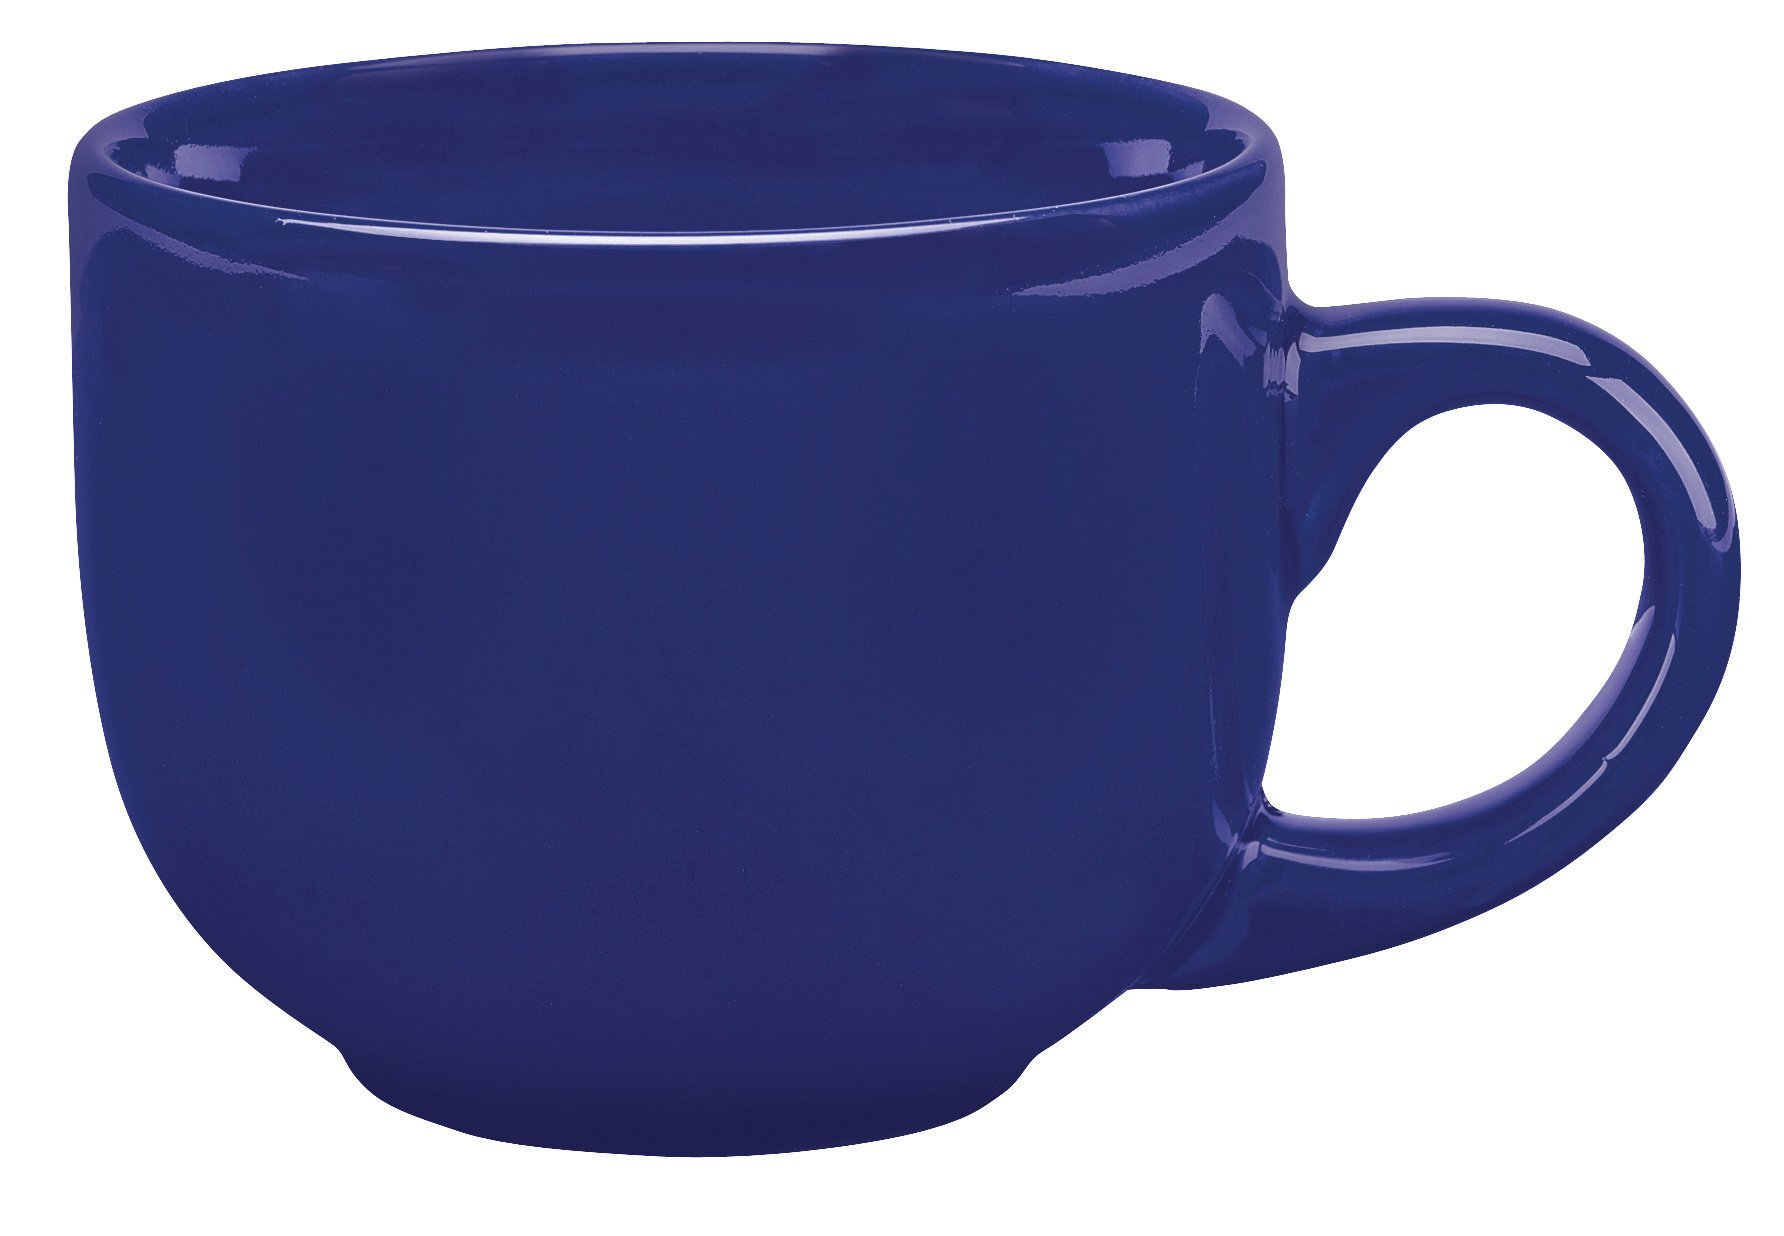 Glossy Ceramic Latte Mug, 16oz.